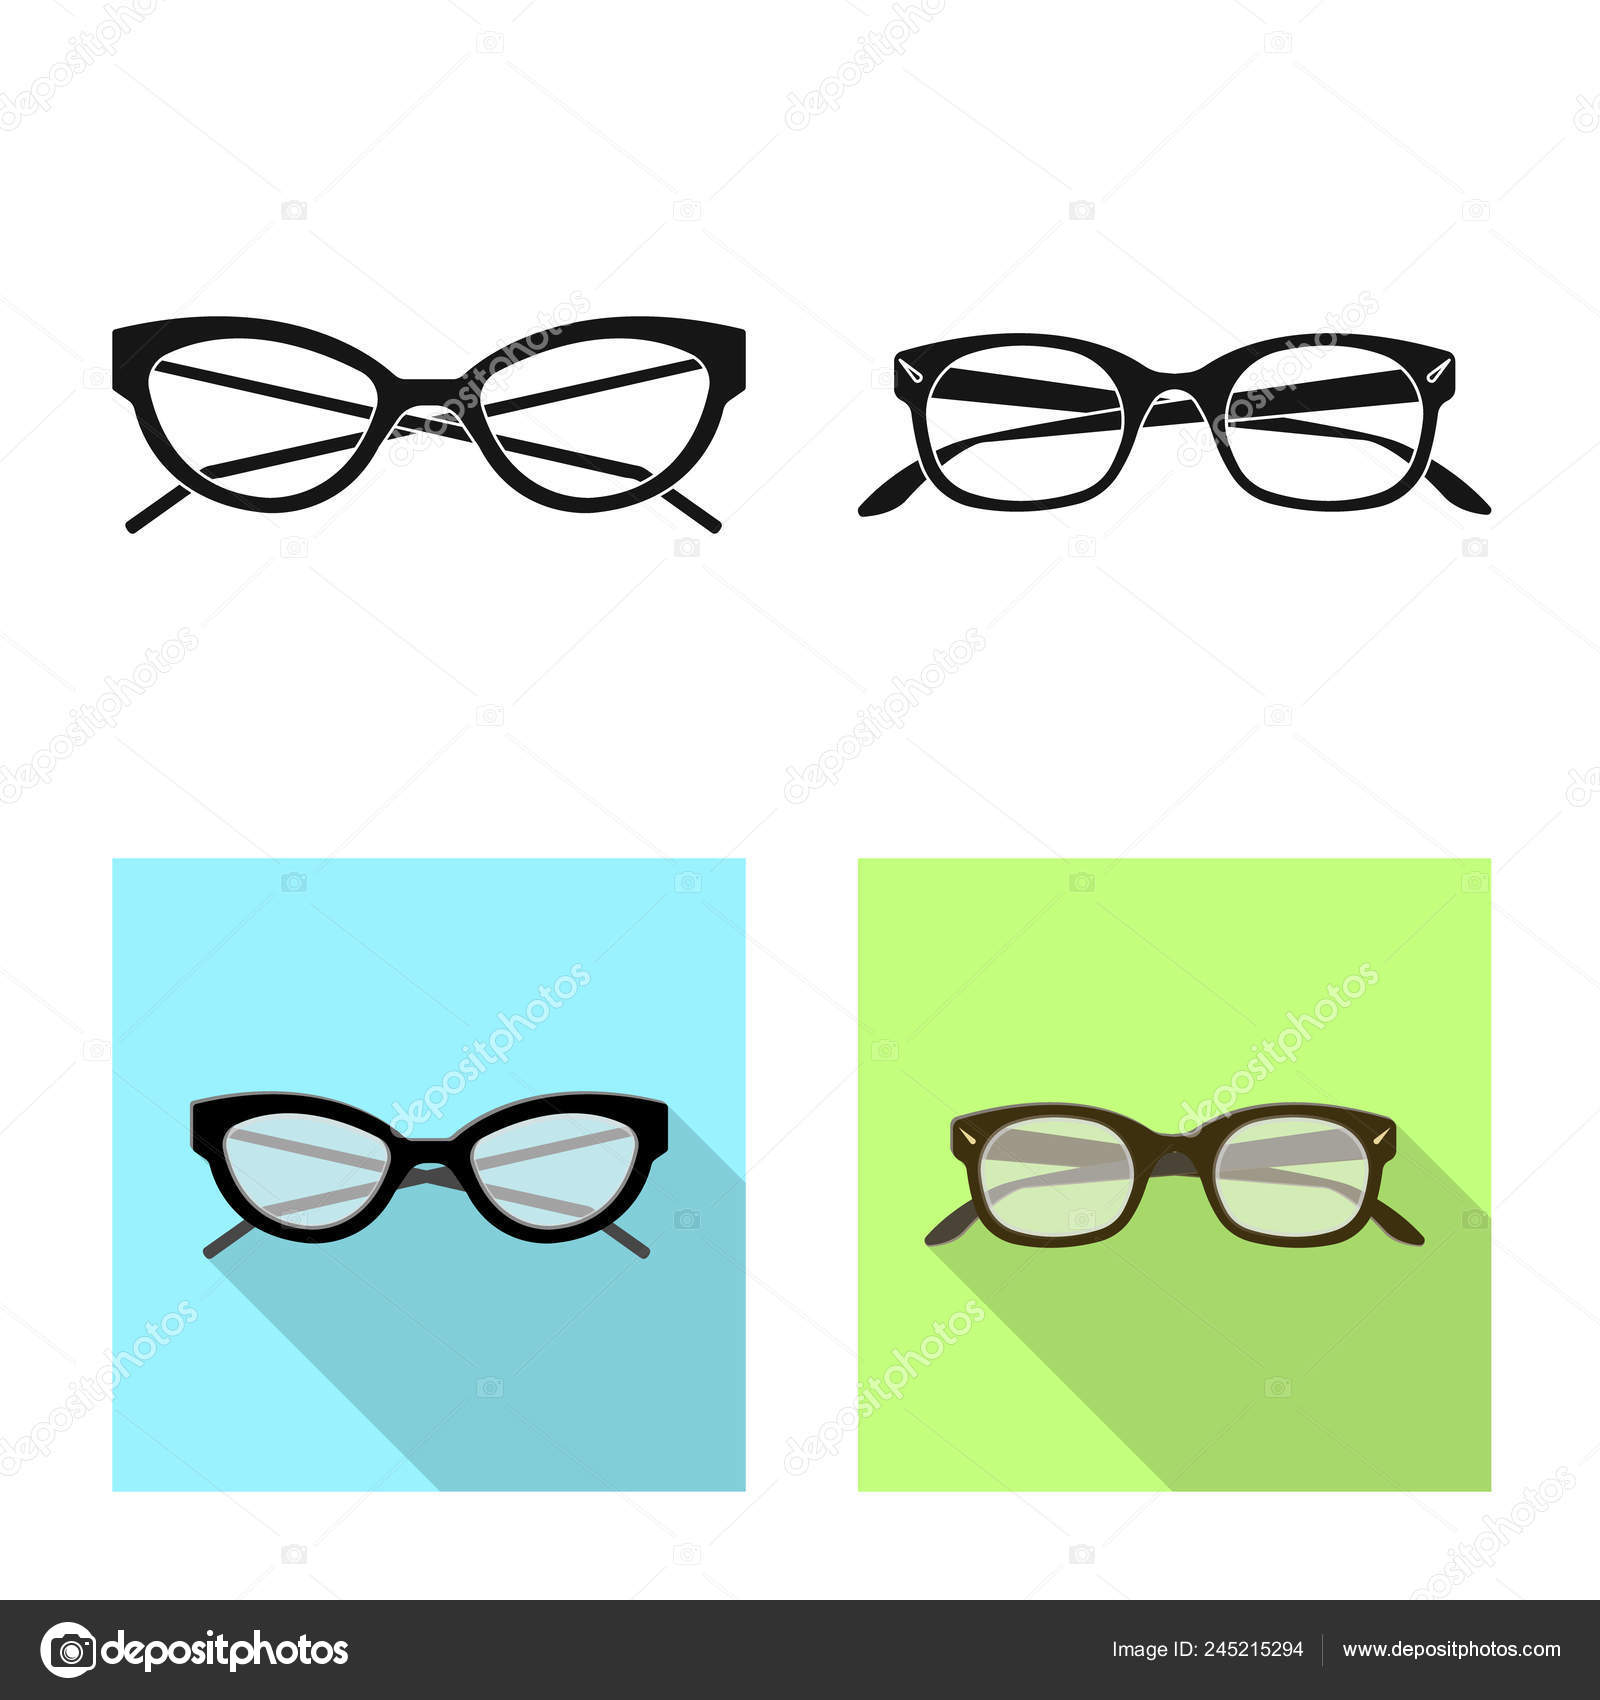 073ef3ae74c7 Vector design of glasses and frame sign. Collection of glasses and  accessory stock vector illustration